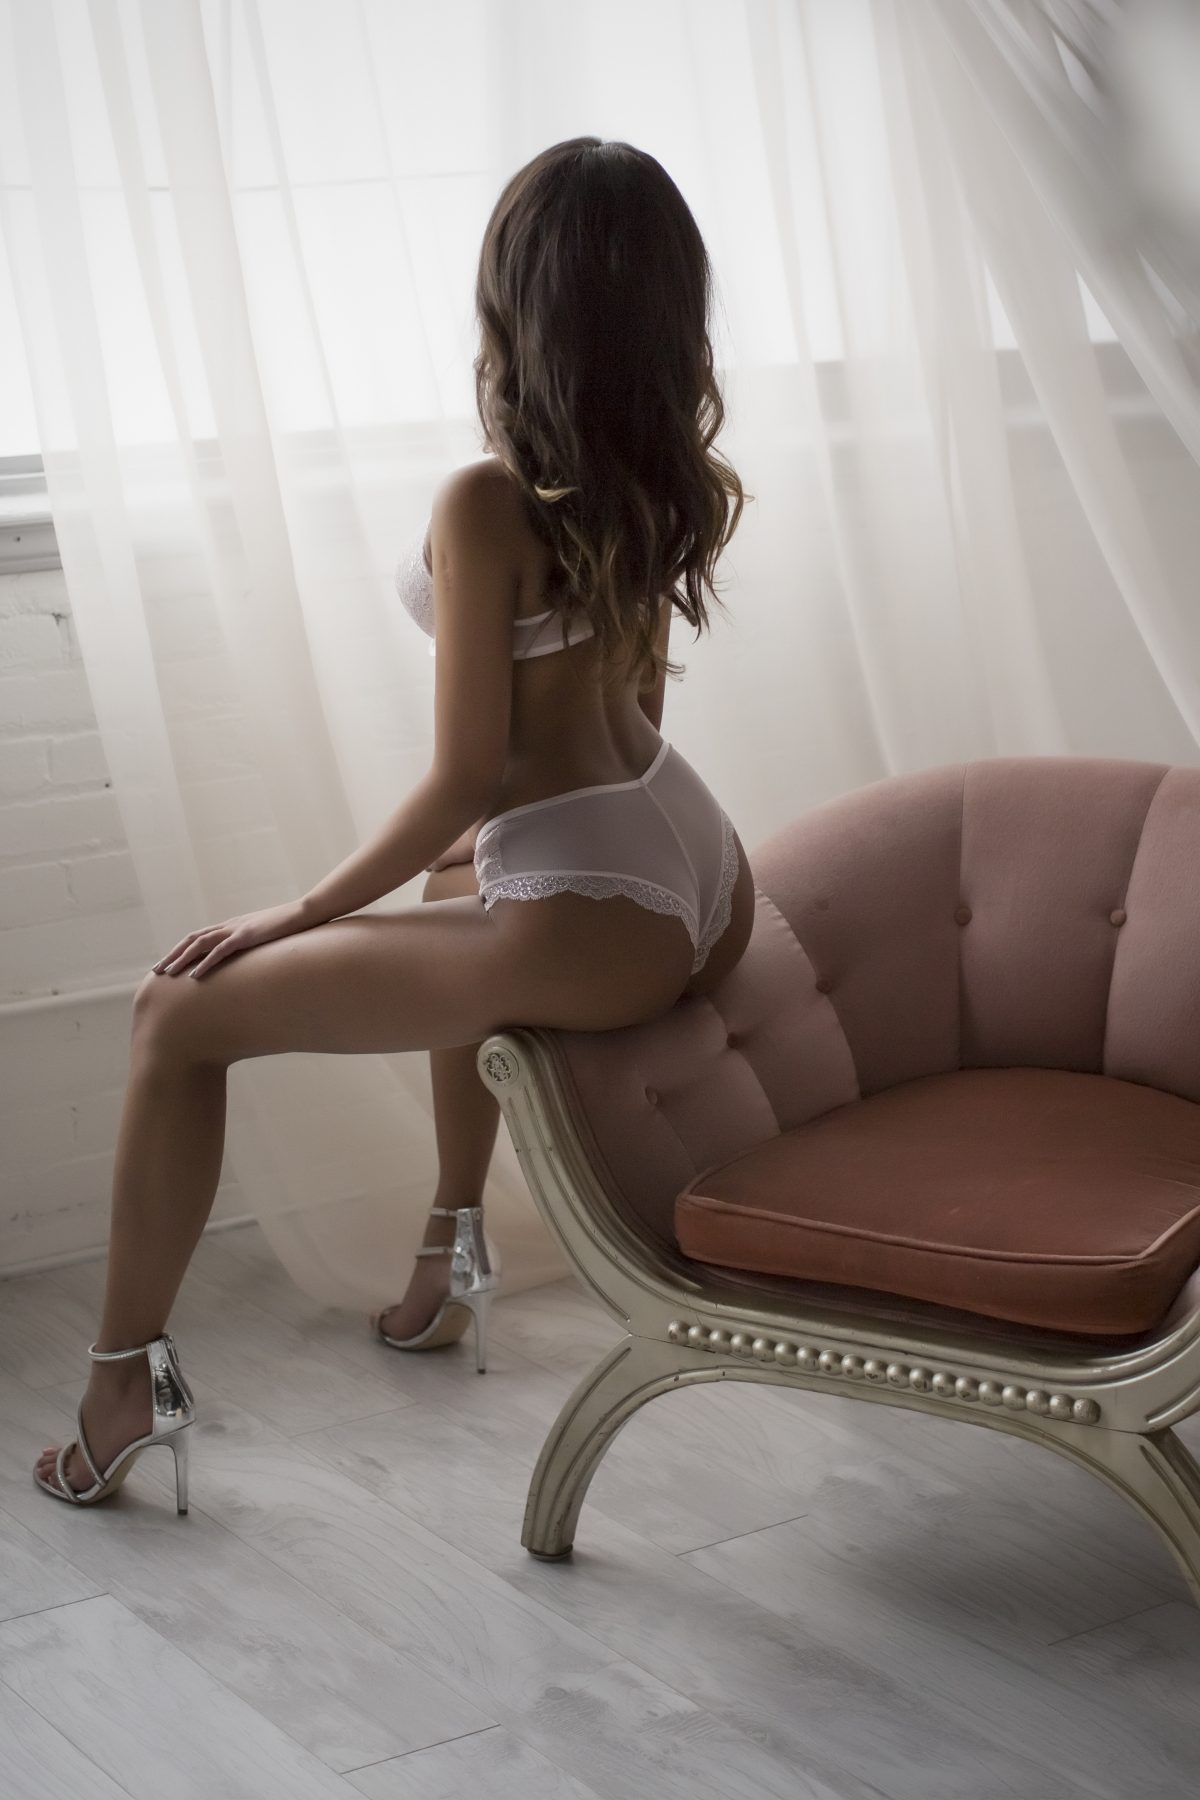 Toronto escorts companion upscale Camila Interests Disability-friendly Non-smoking Age Young Figure Slender Petite Breasts Natural Hair Brunette Ethnicity Exotic Tattoos Small